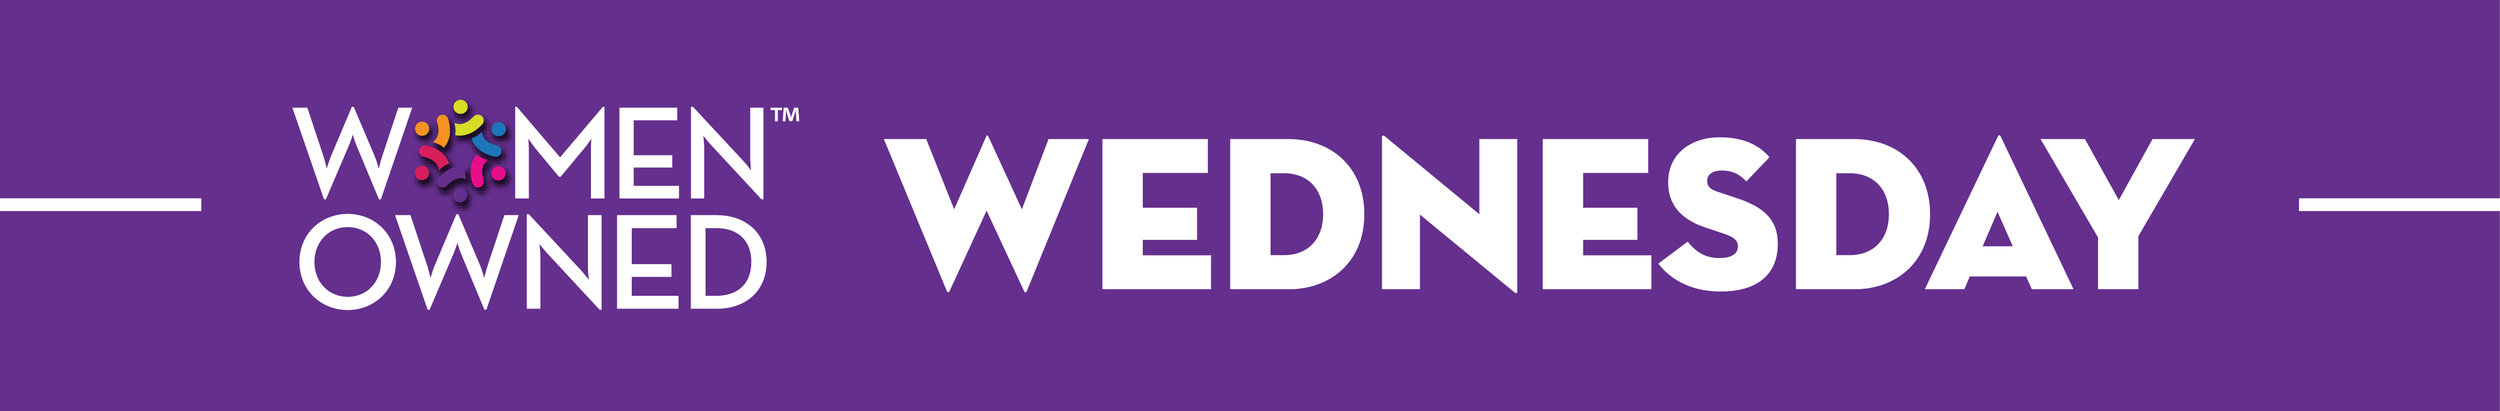 women-owned-wednesday-logo.jpg